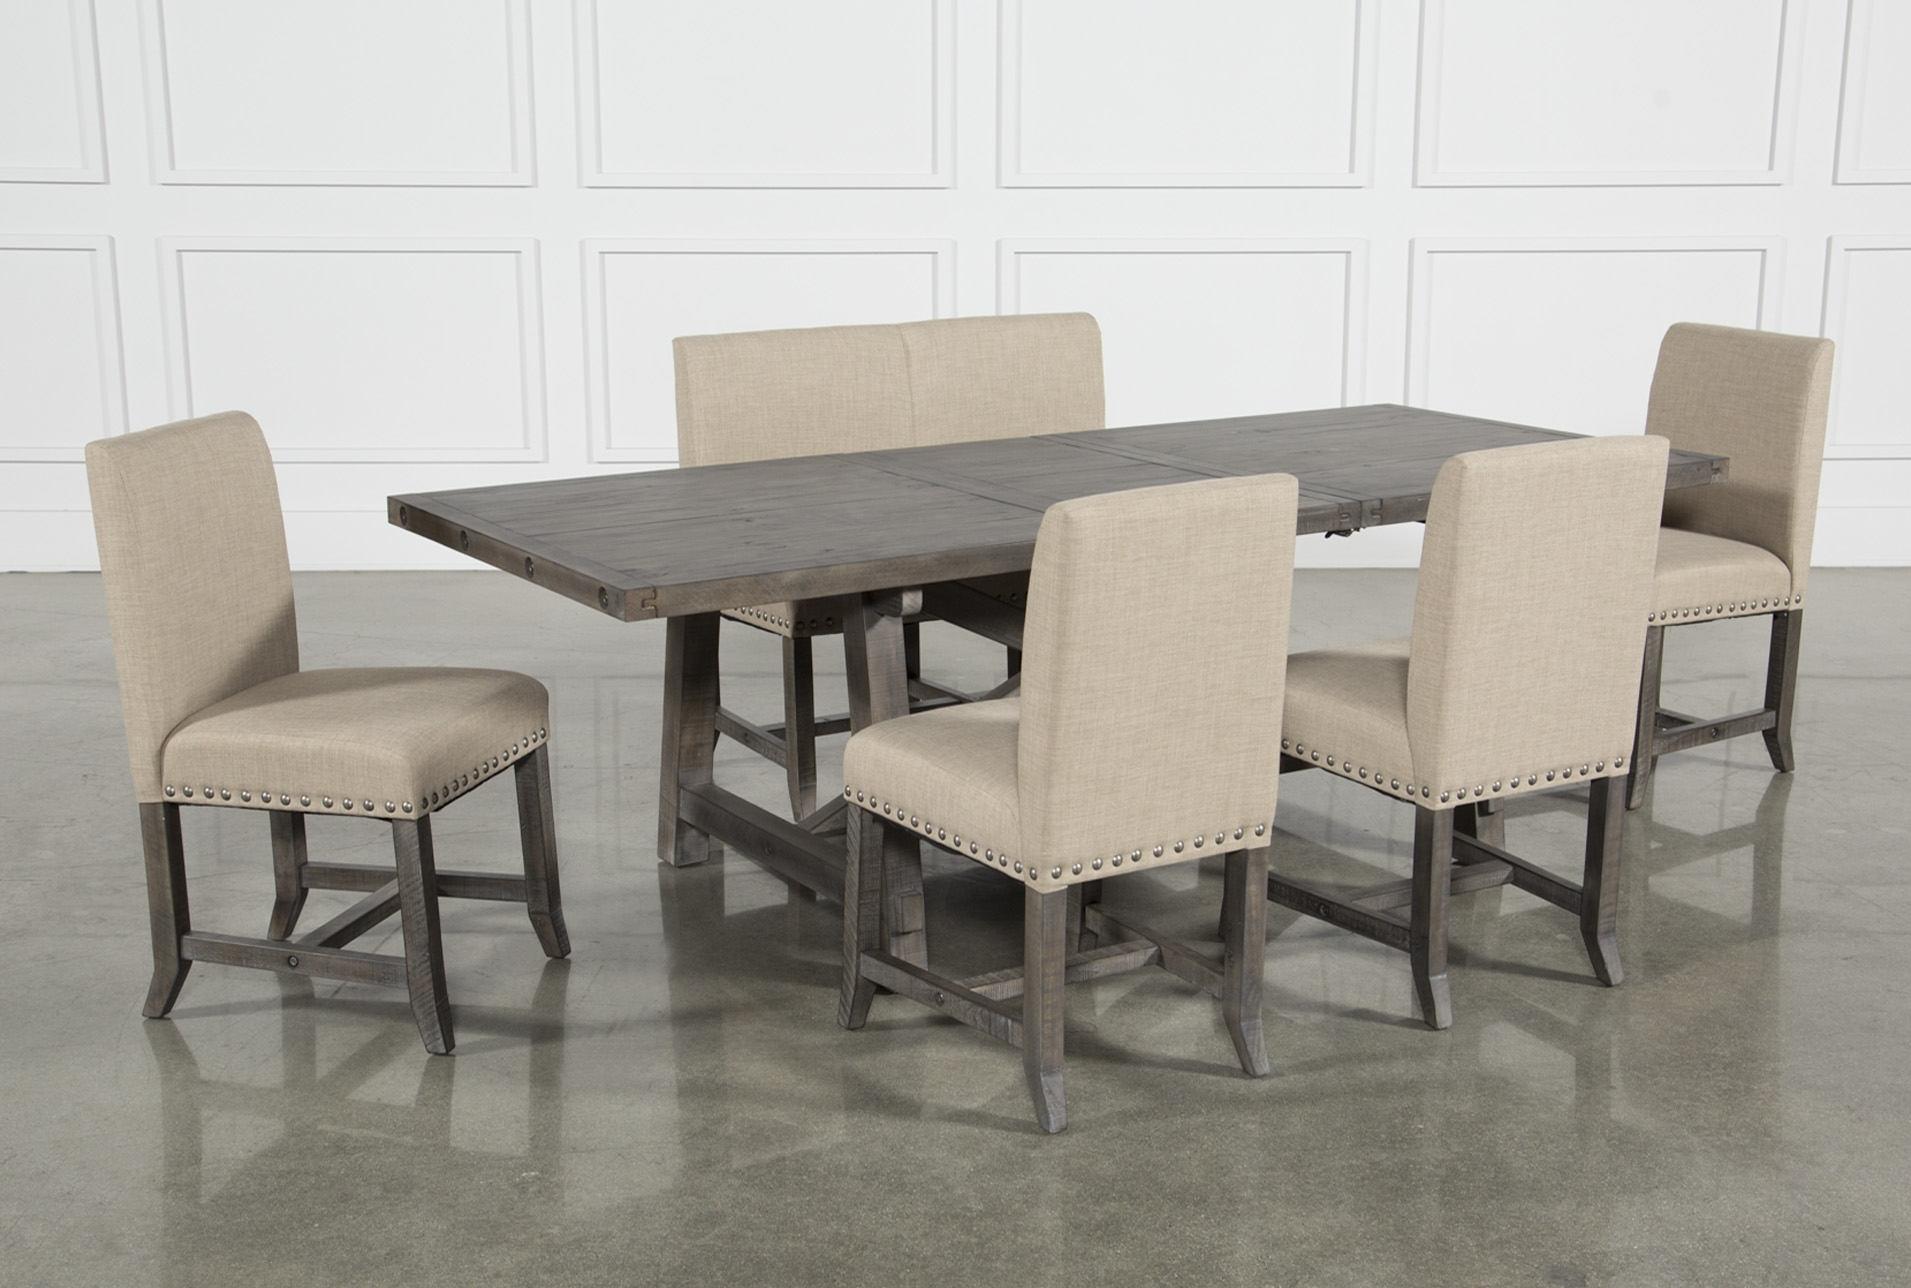 Jaxon Grey 6 Piece Rectangle Extension Dining Set W/bench & Uph Inside Most Recently Released Jaxon Grey 6 Piece Rectangle Extension Dining Sets With Bench & Uph Chairs (View 2 of 20)